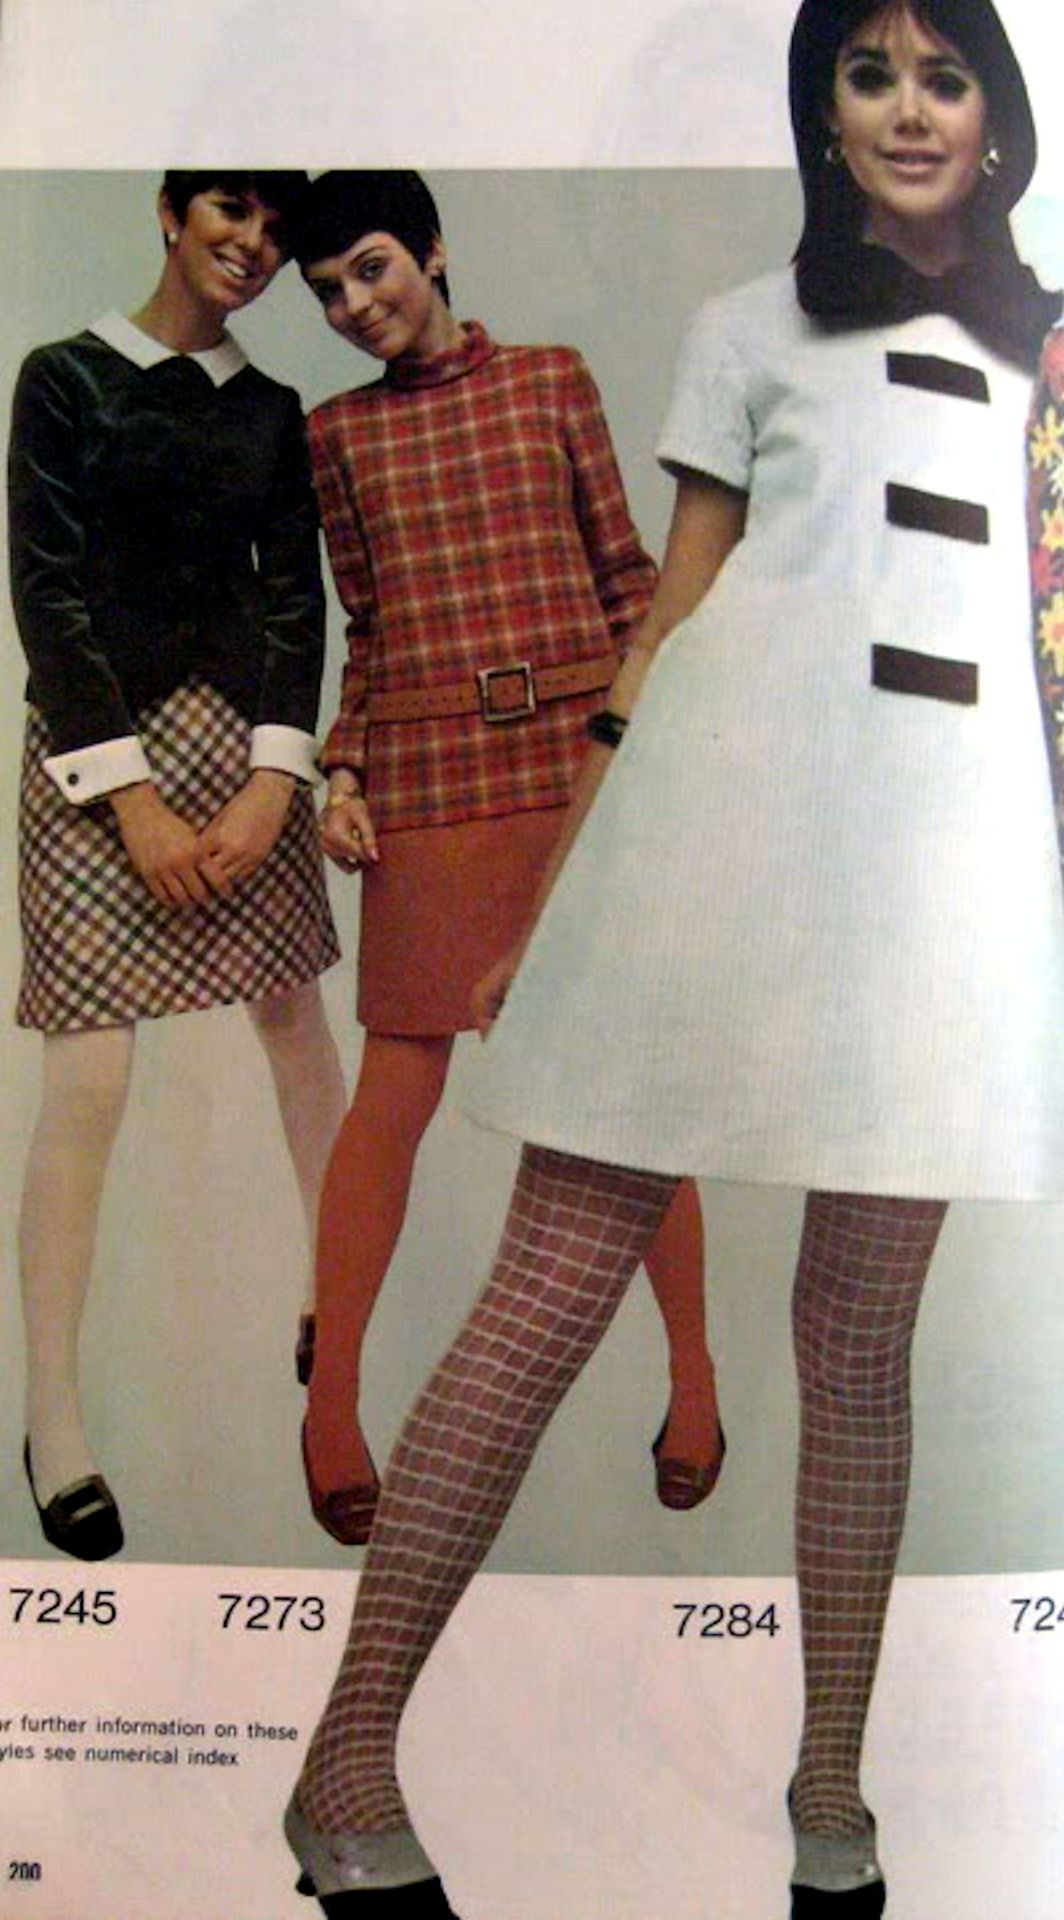 Pin By Val Vida On Mod Pinterest 1960s Style Patterned Tights And 1960s